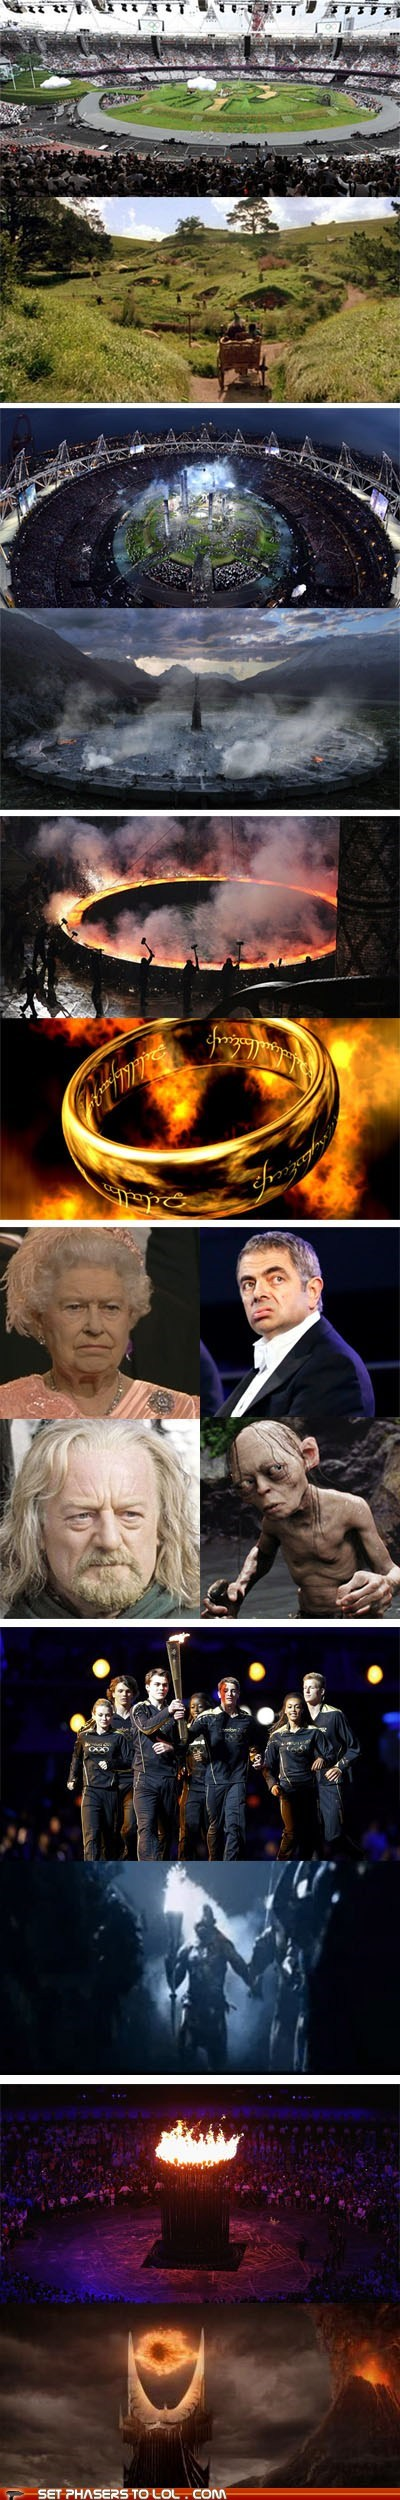 best of the week gollum London 2012 Lord of The Ring Lord of the Rings mordor mr-bean olympics opening ceremony Queen Elizabeth II rowan atkinson sauron similar Sméagol The Shire totally looks like - 6469565440